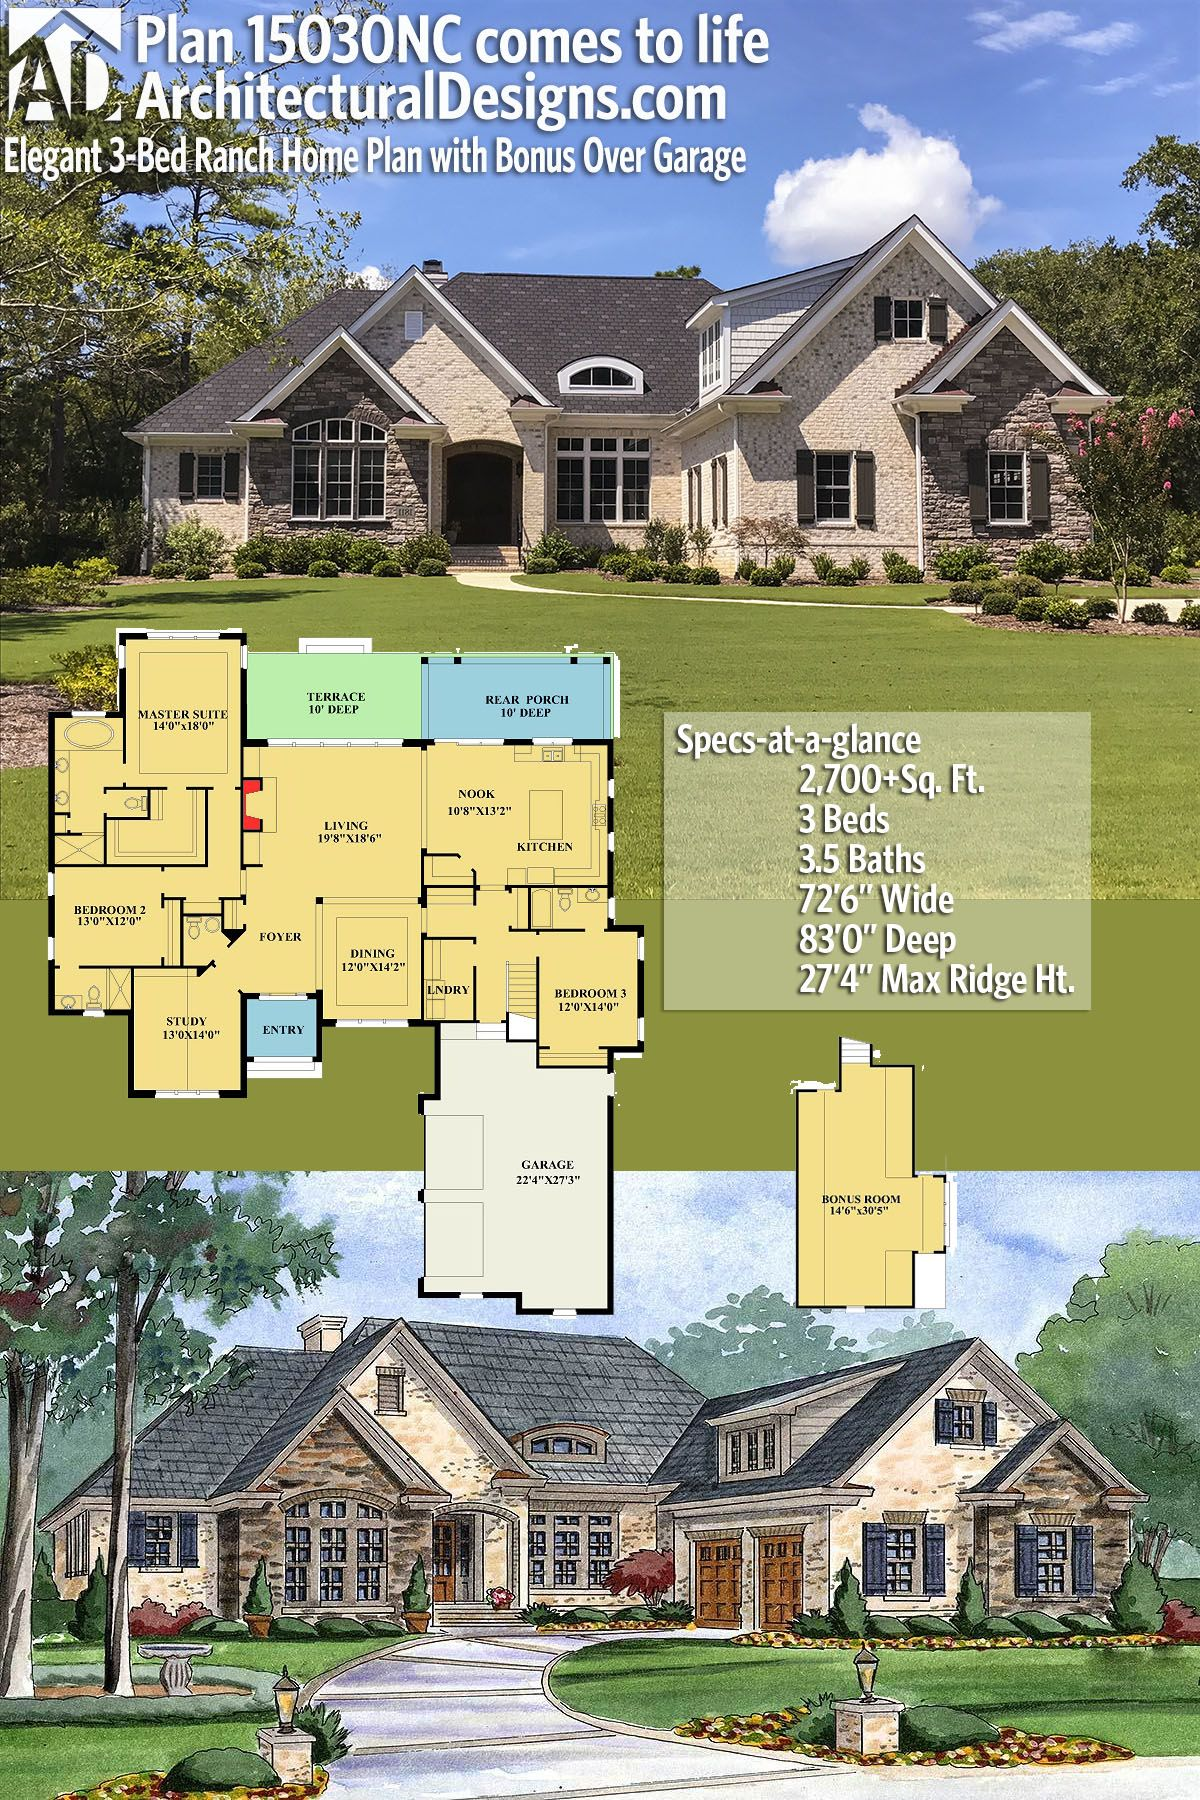 Architectural Designs House Plan 15030NC comes to